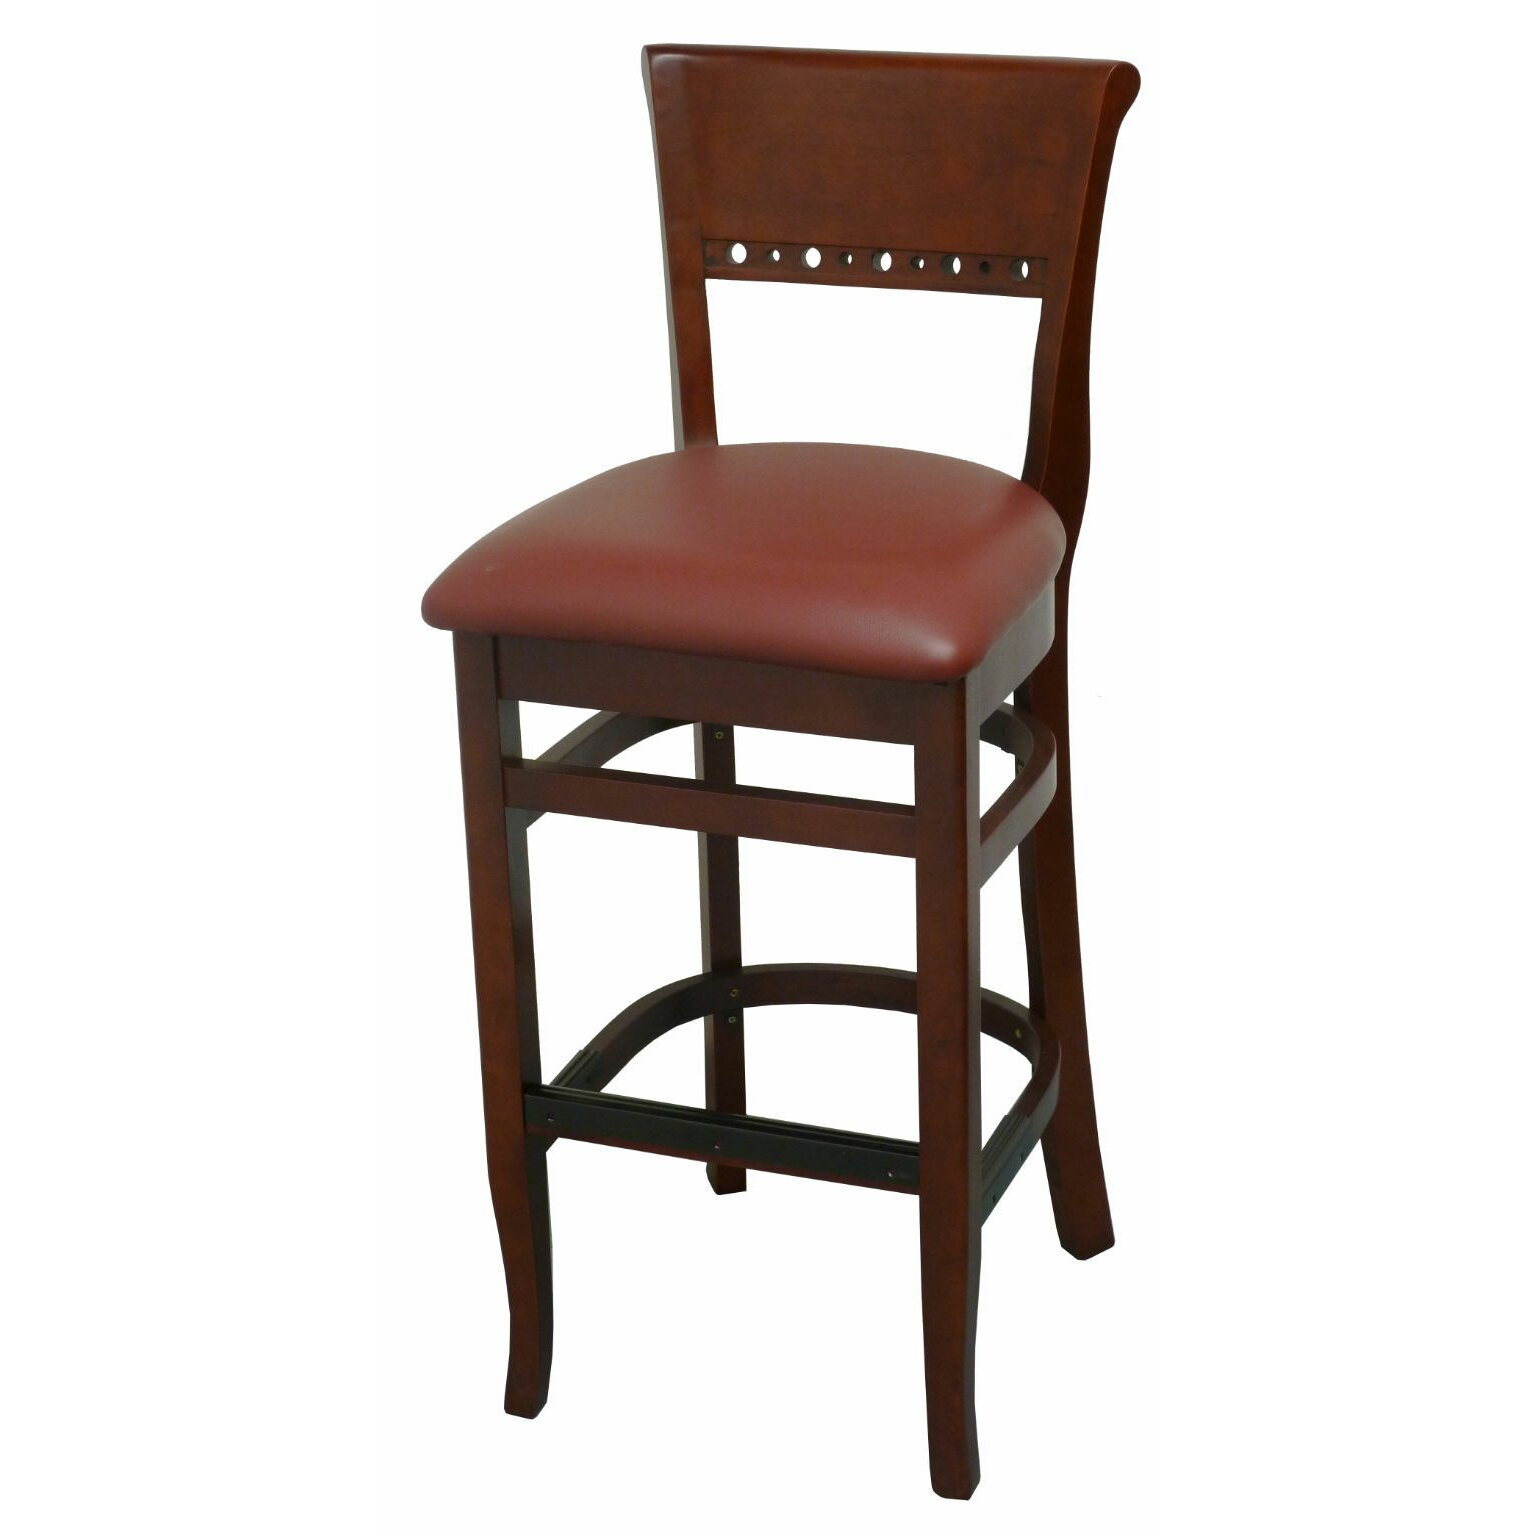 bar stool with cushion by dhc furniture